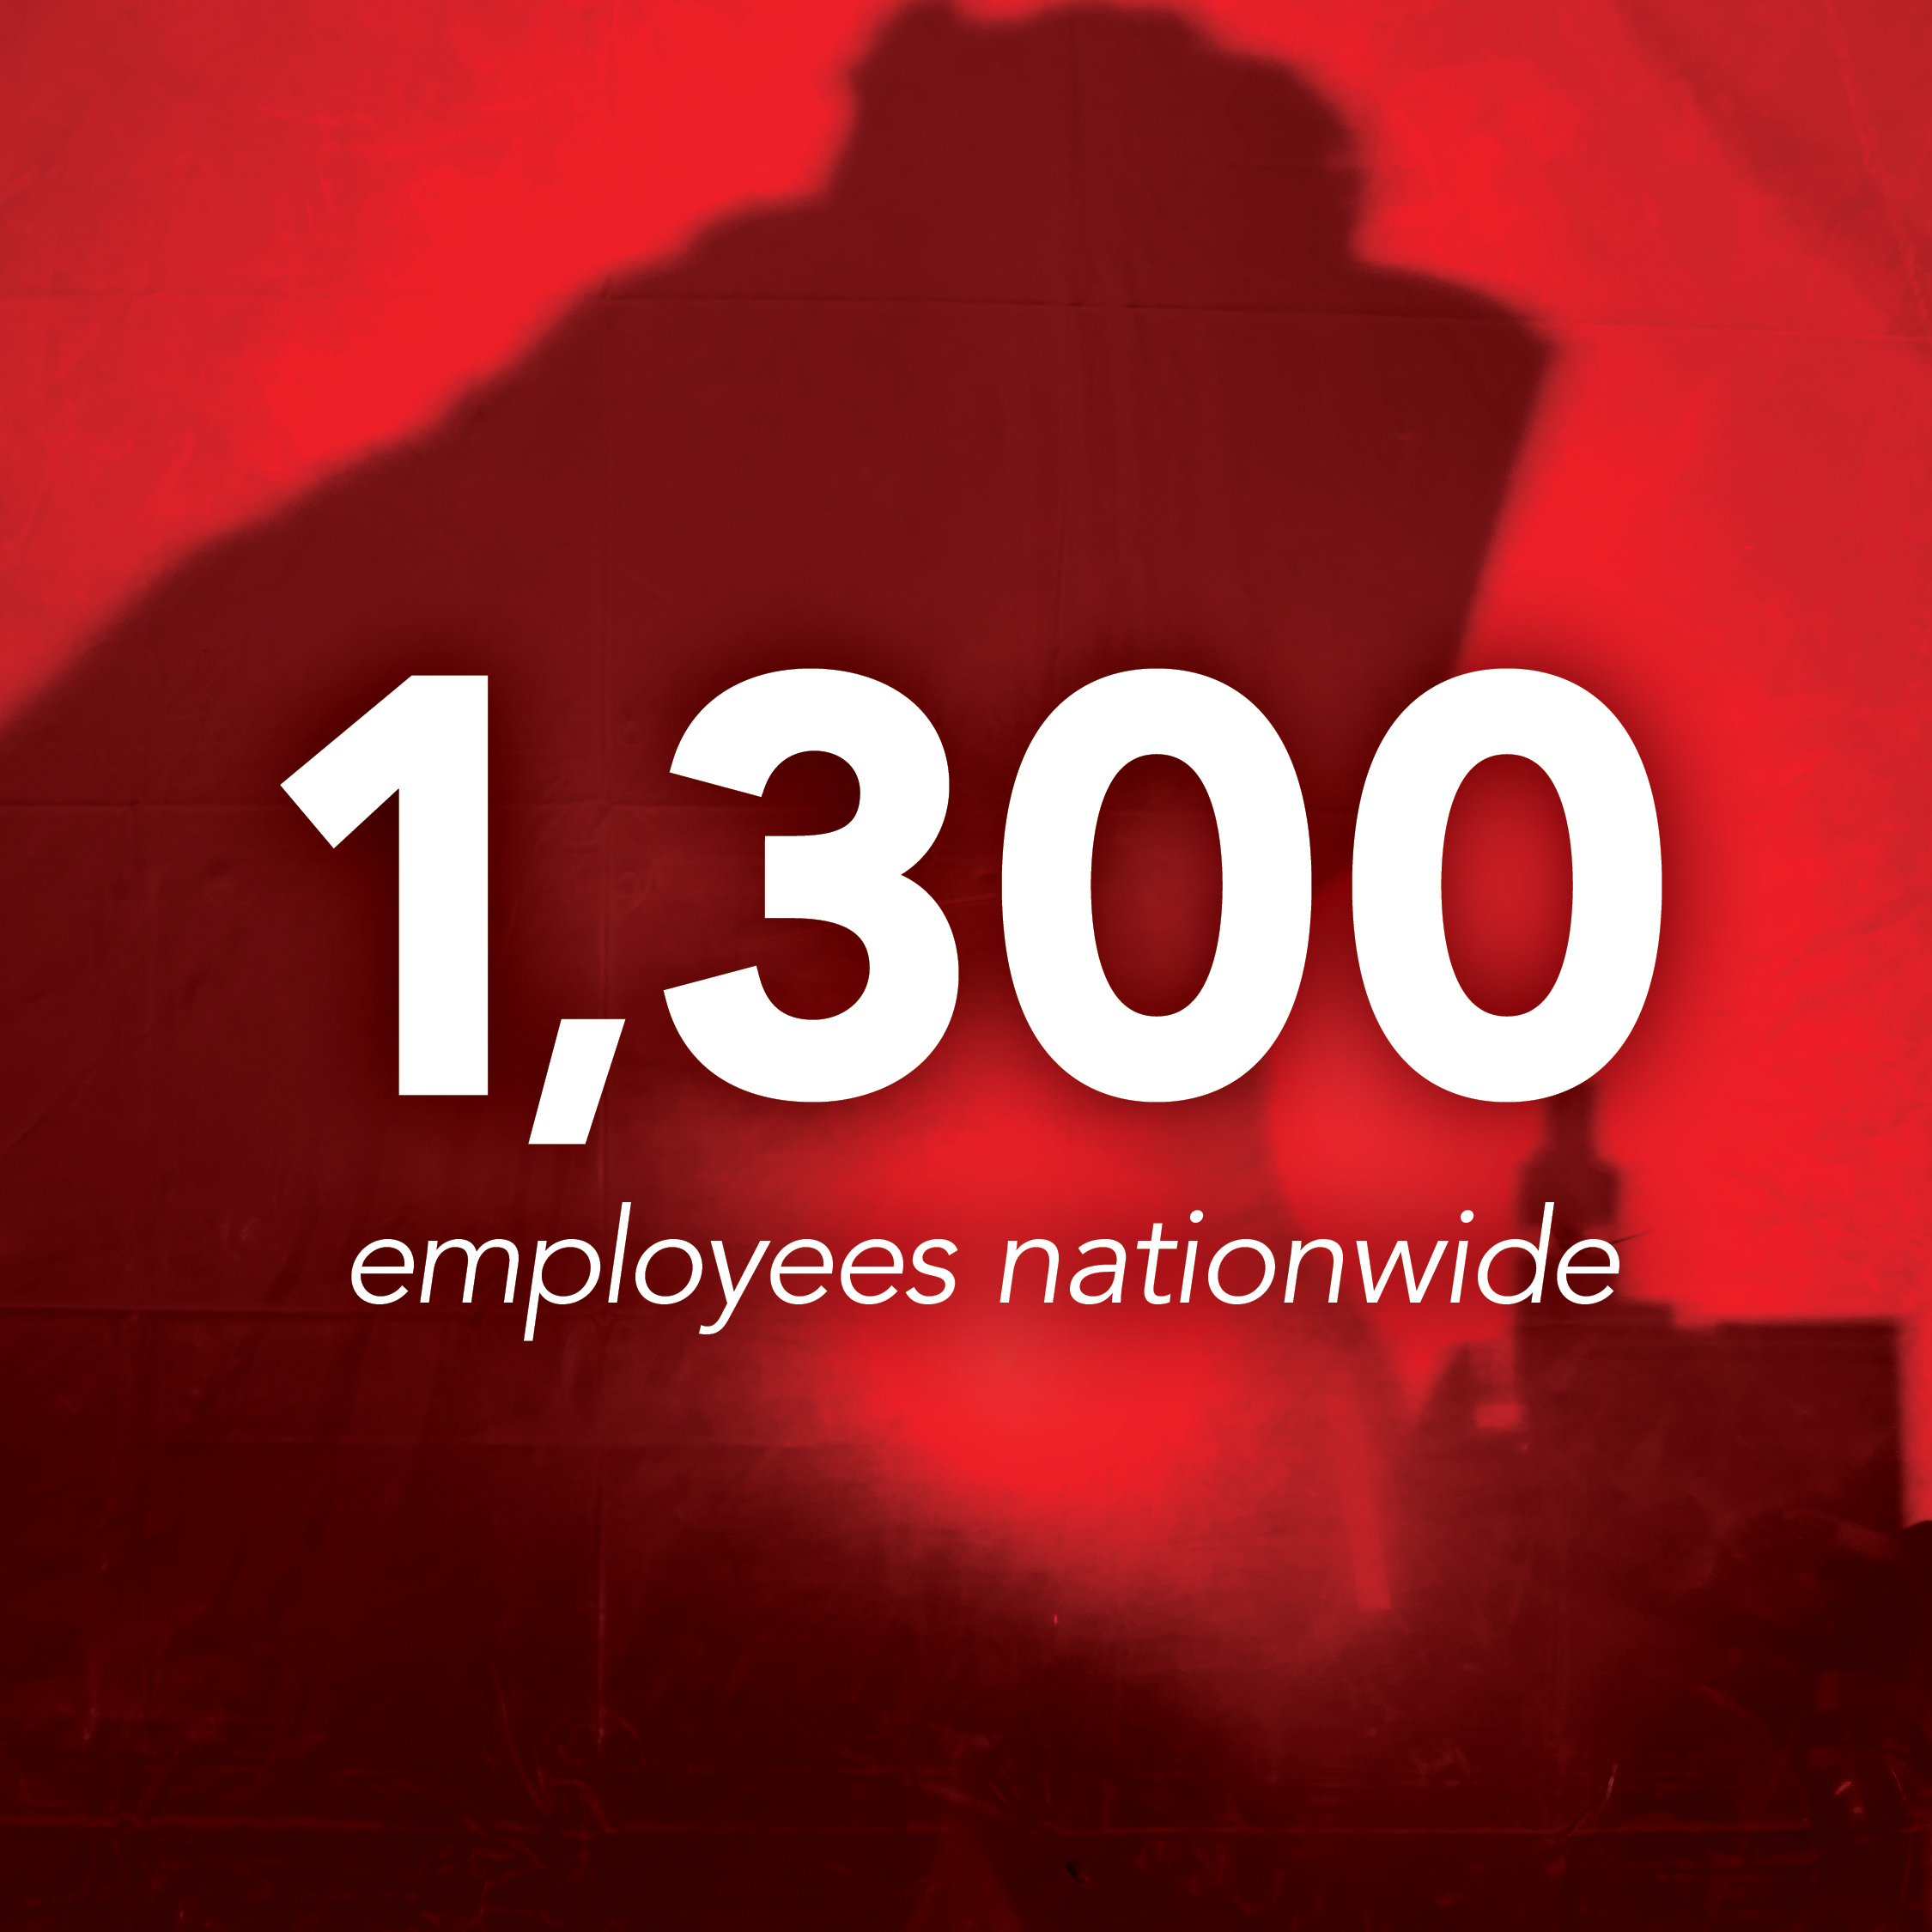 1,300 employees nationwide